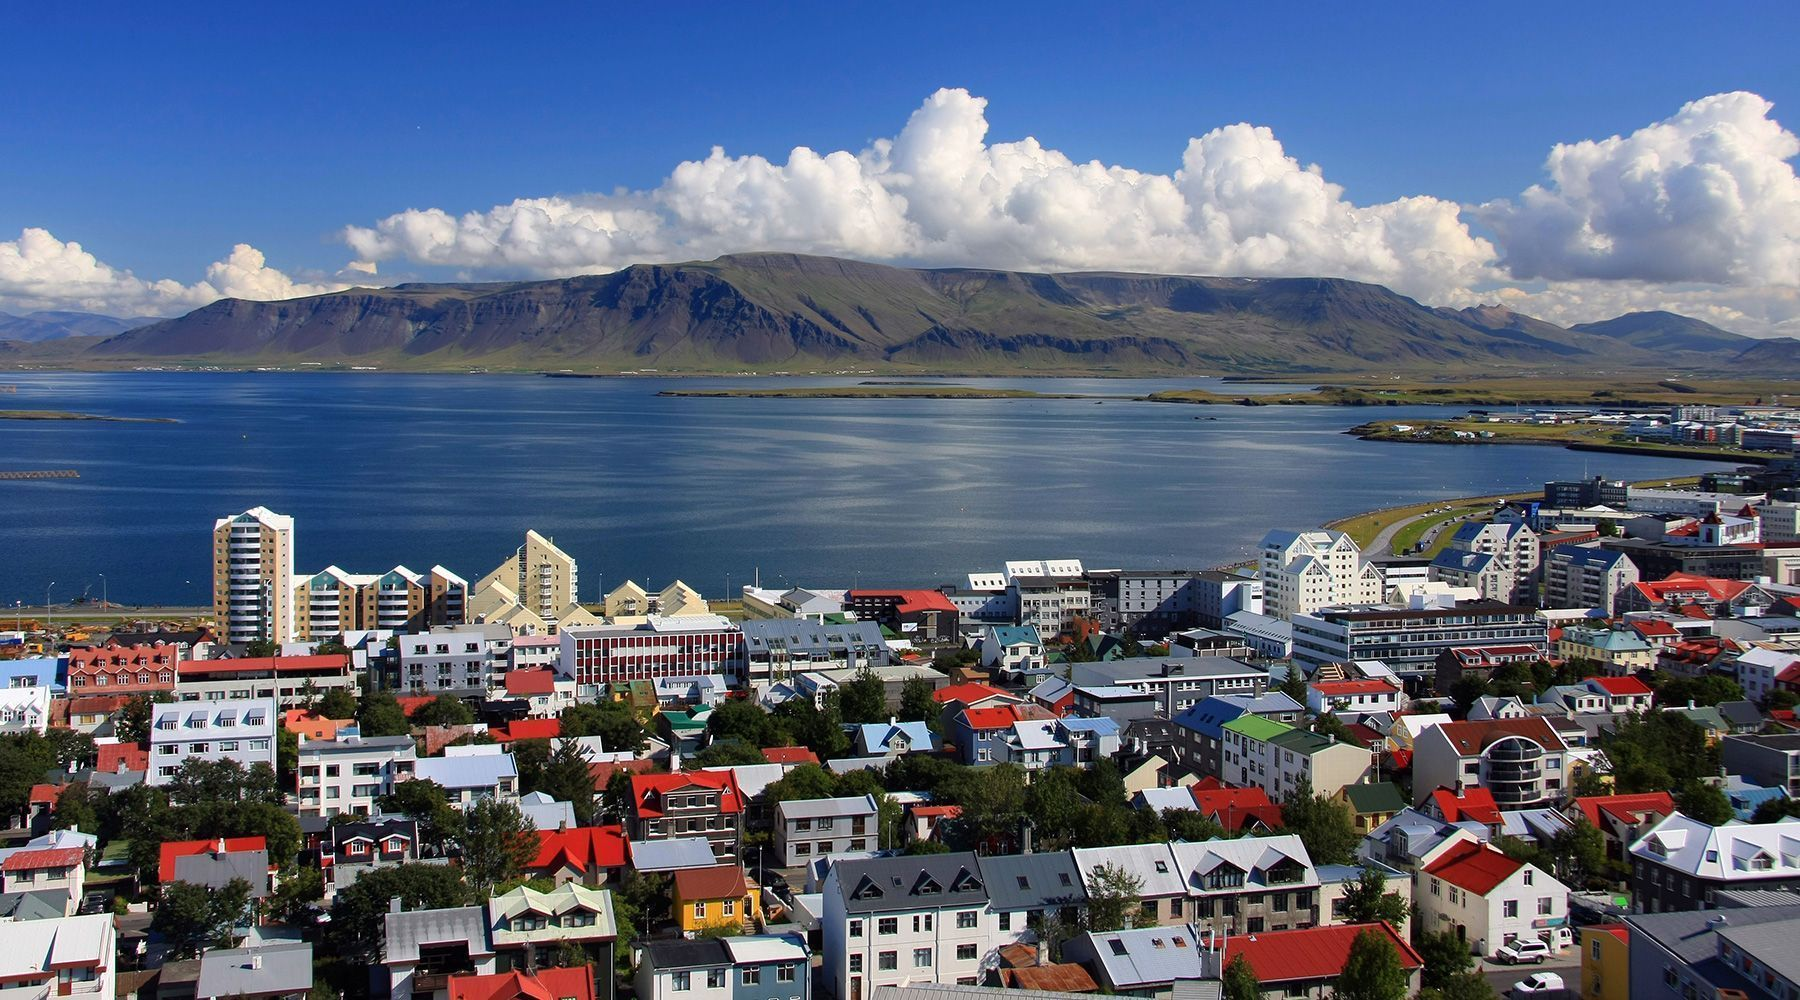 10 of world's most commonly mispronounced places